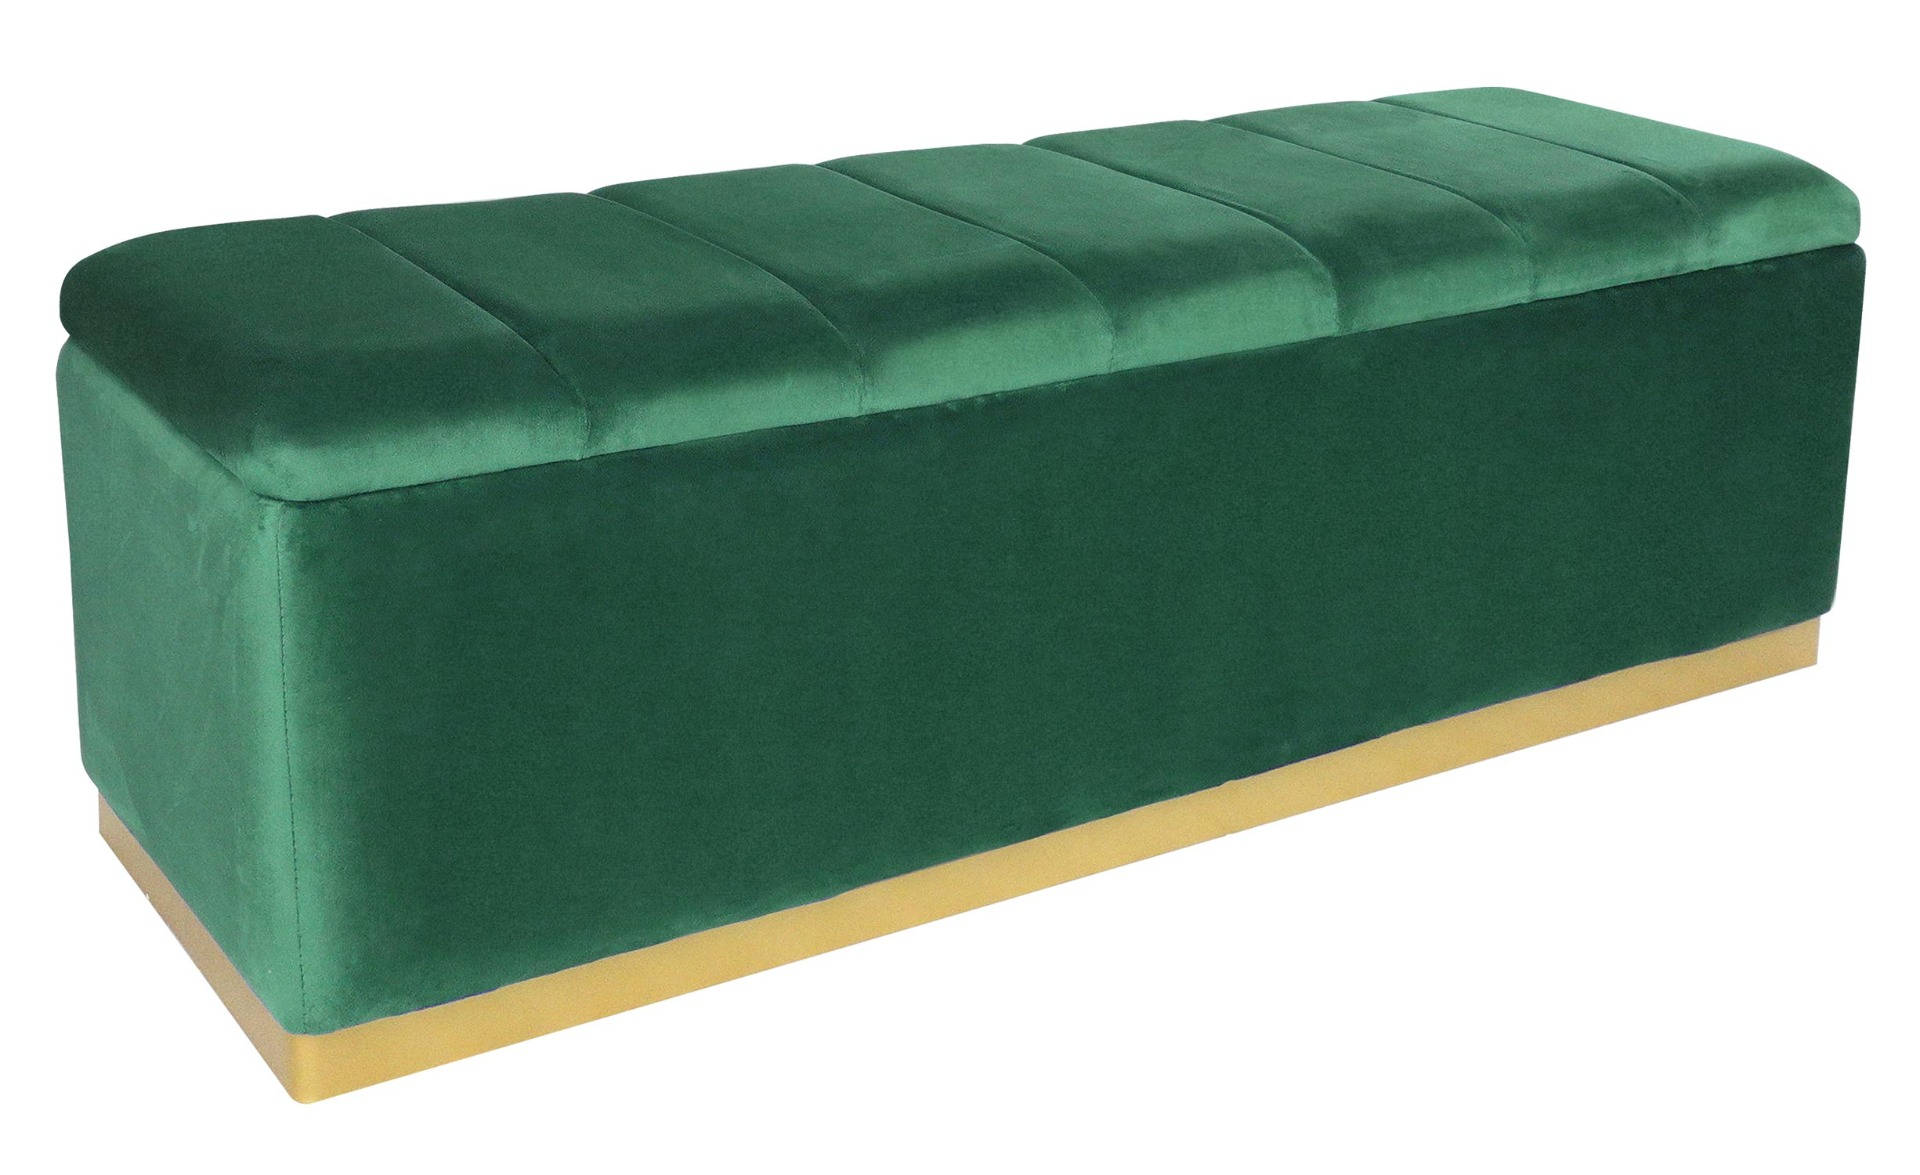 Banc coffre Alexandrie Velours Vert Pied Or